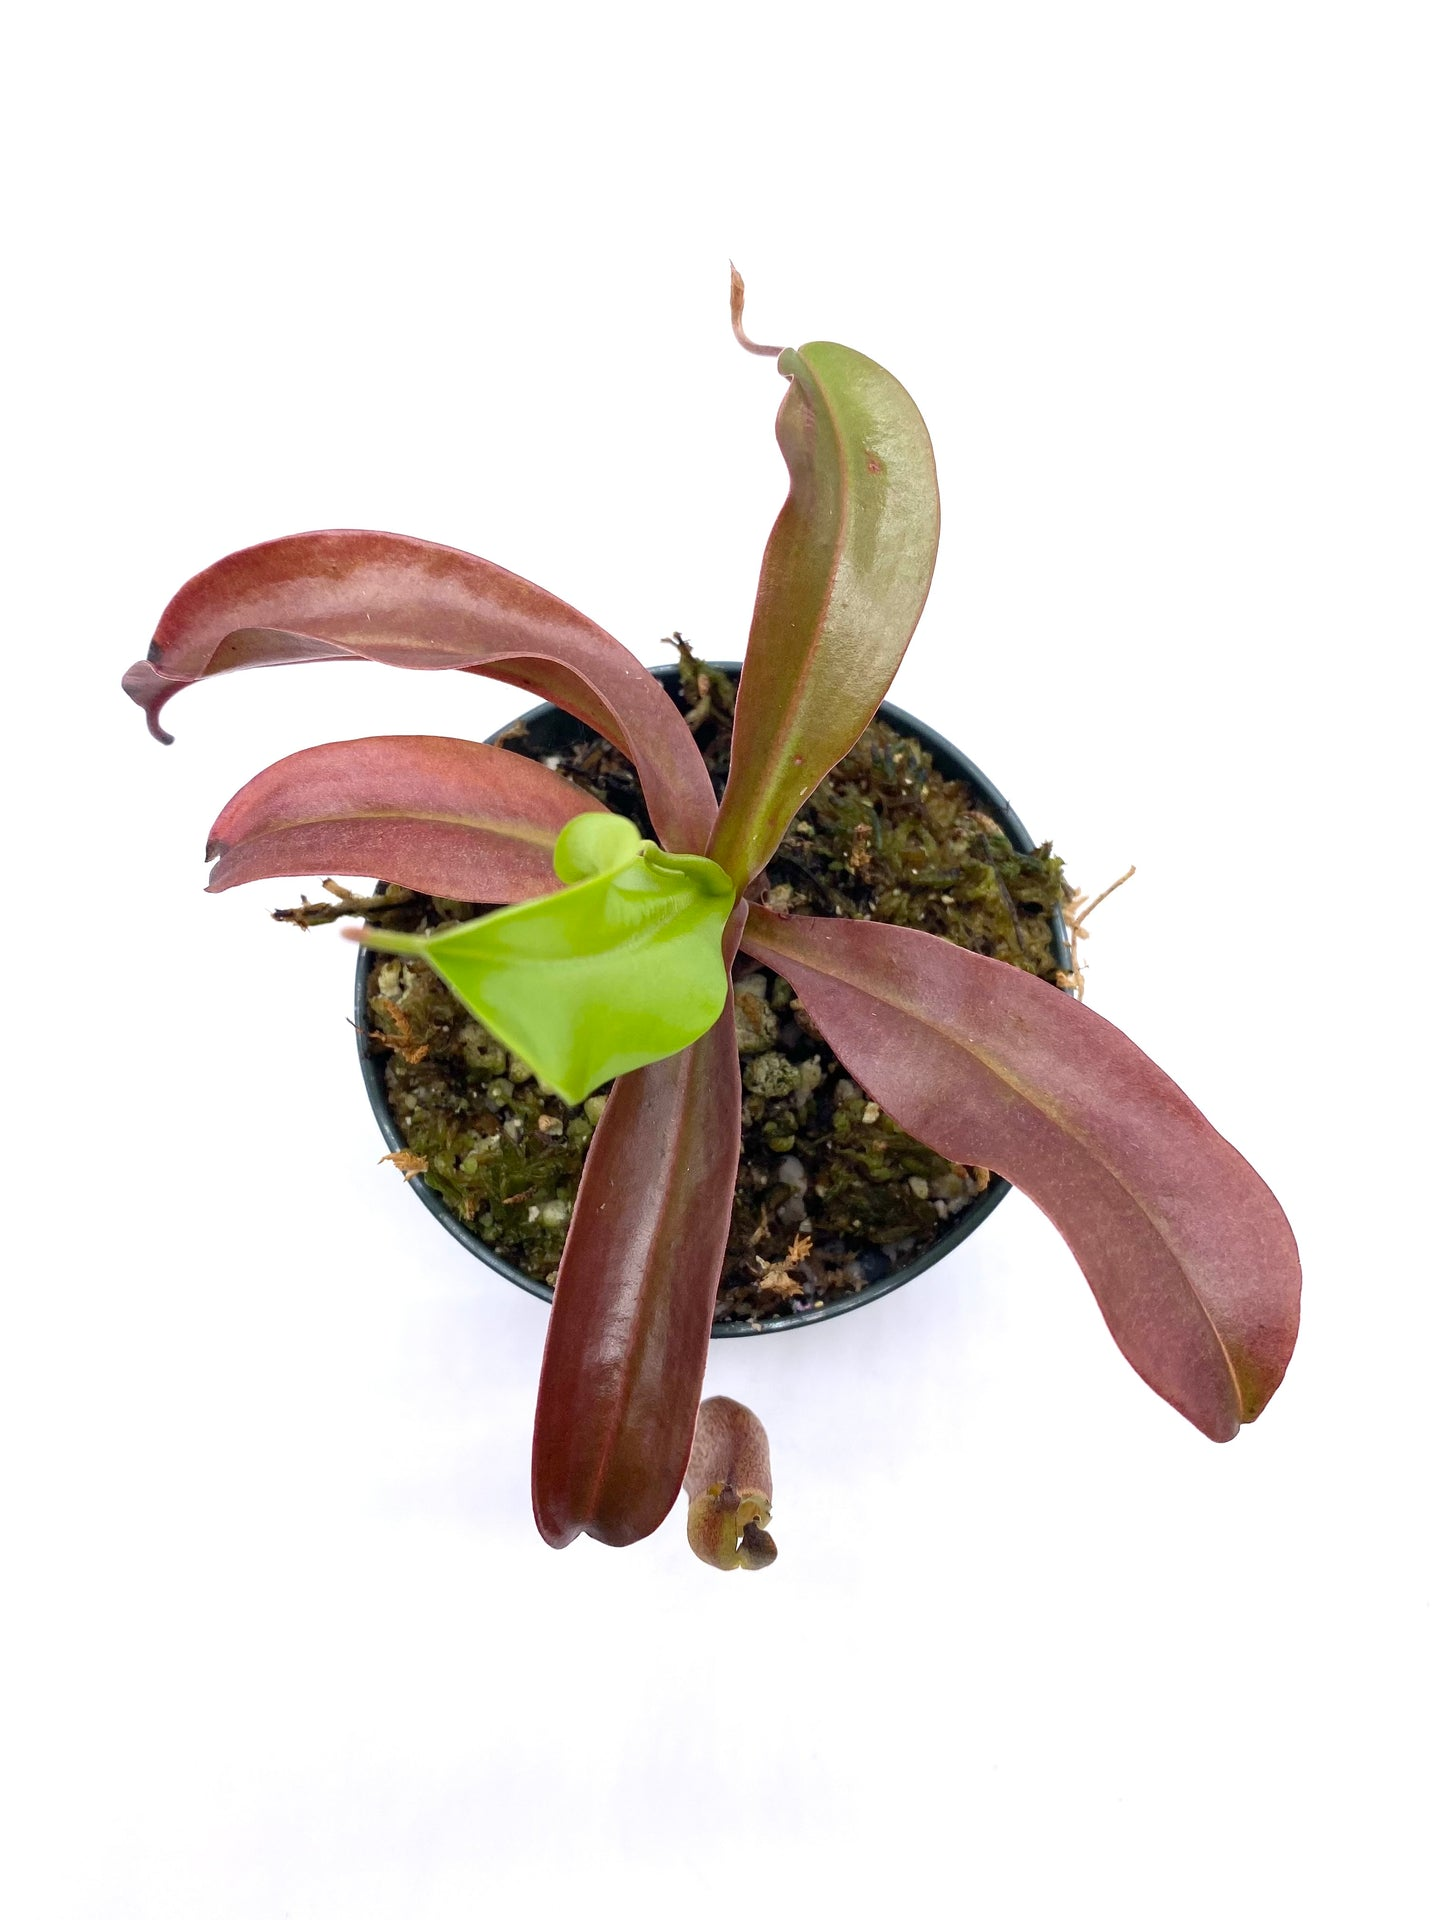 Nepenthes sibuyanensis x ventricosa 'Red'